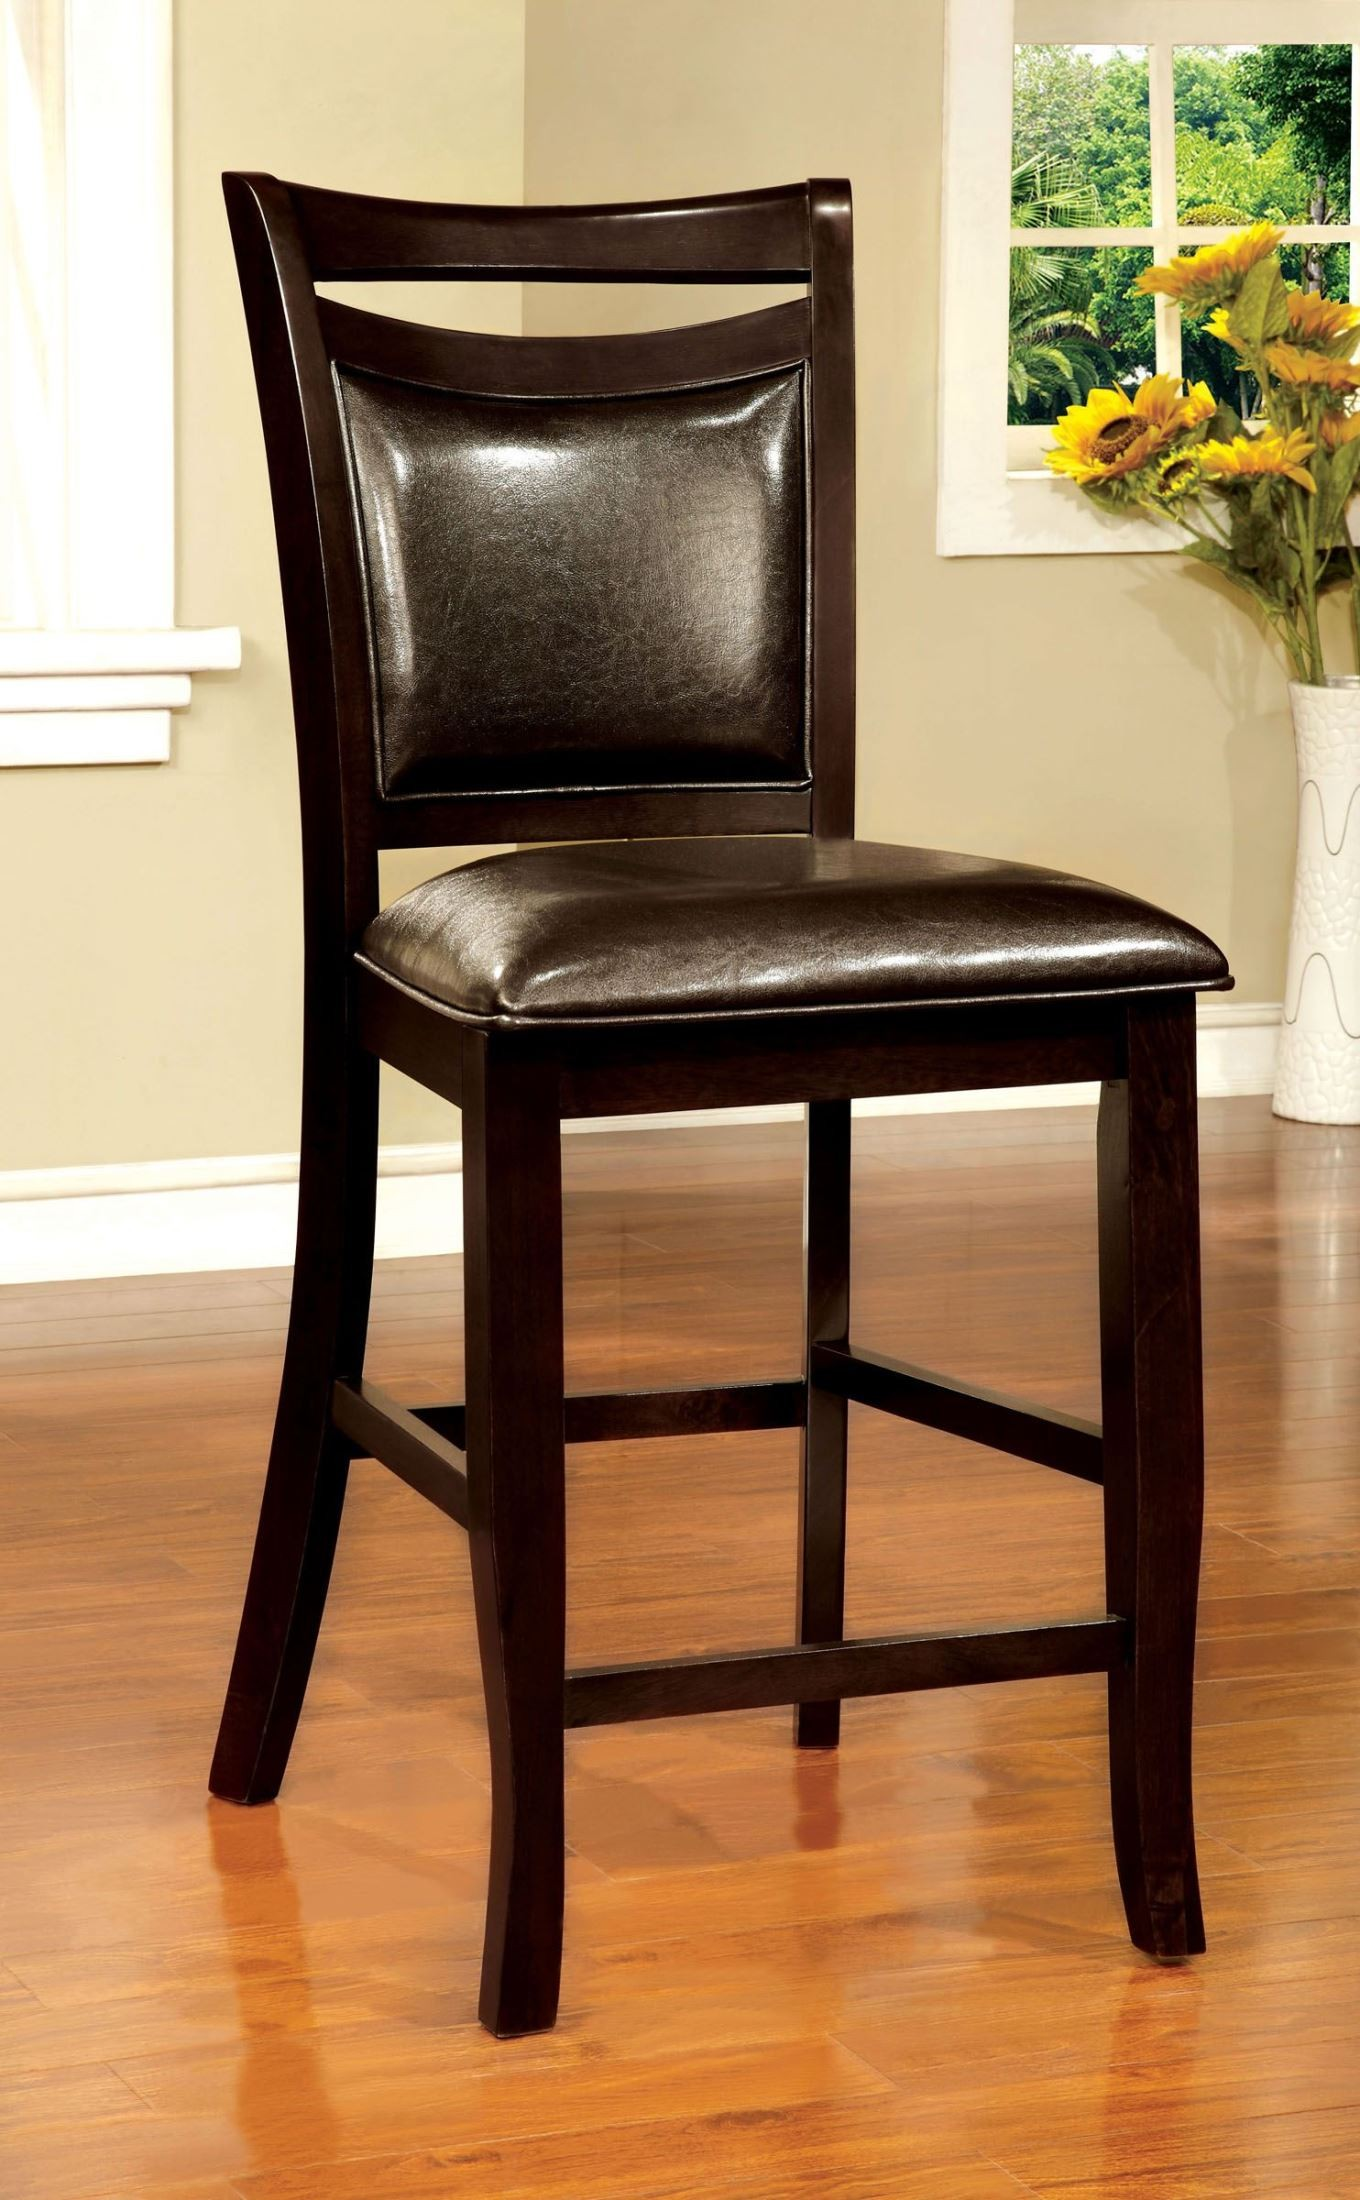 Counter Height Espresso Chairs : Woodside II Espresso Counter Height Chair Set of 2 from Furniture of ...